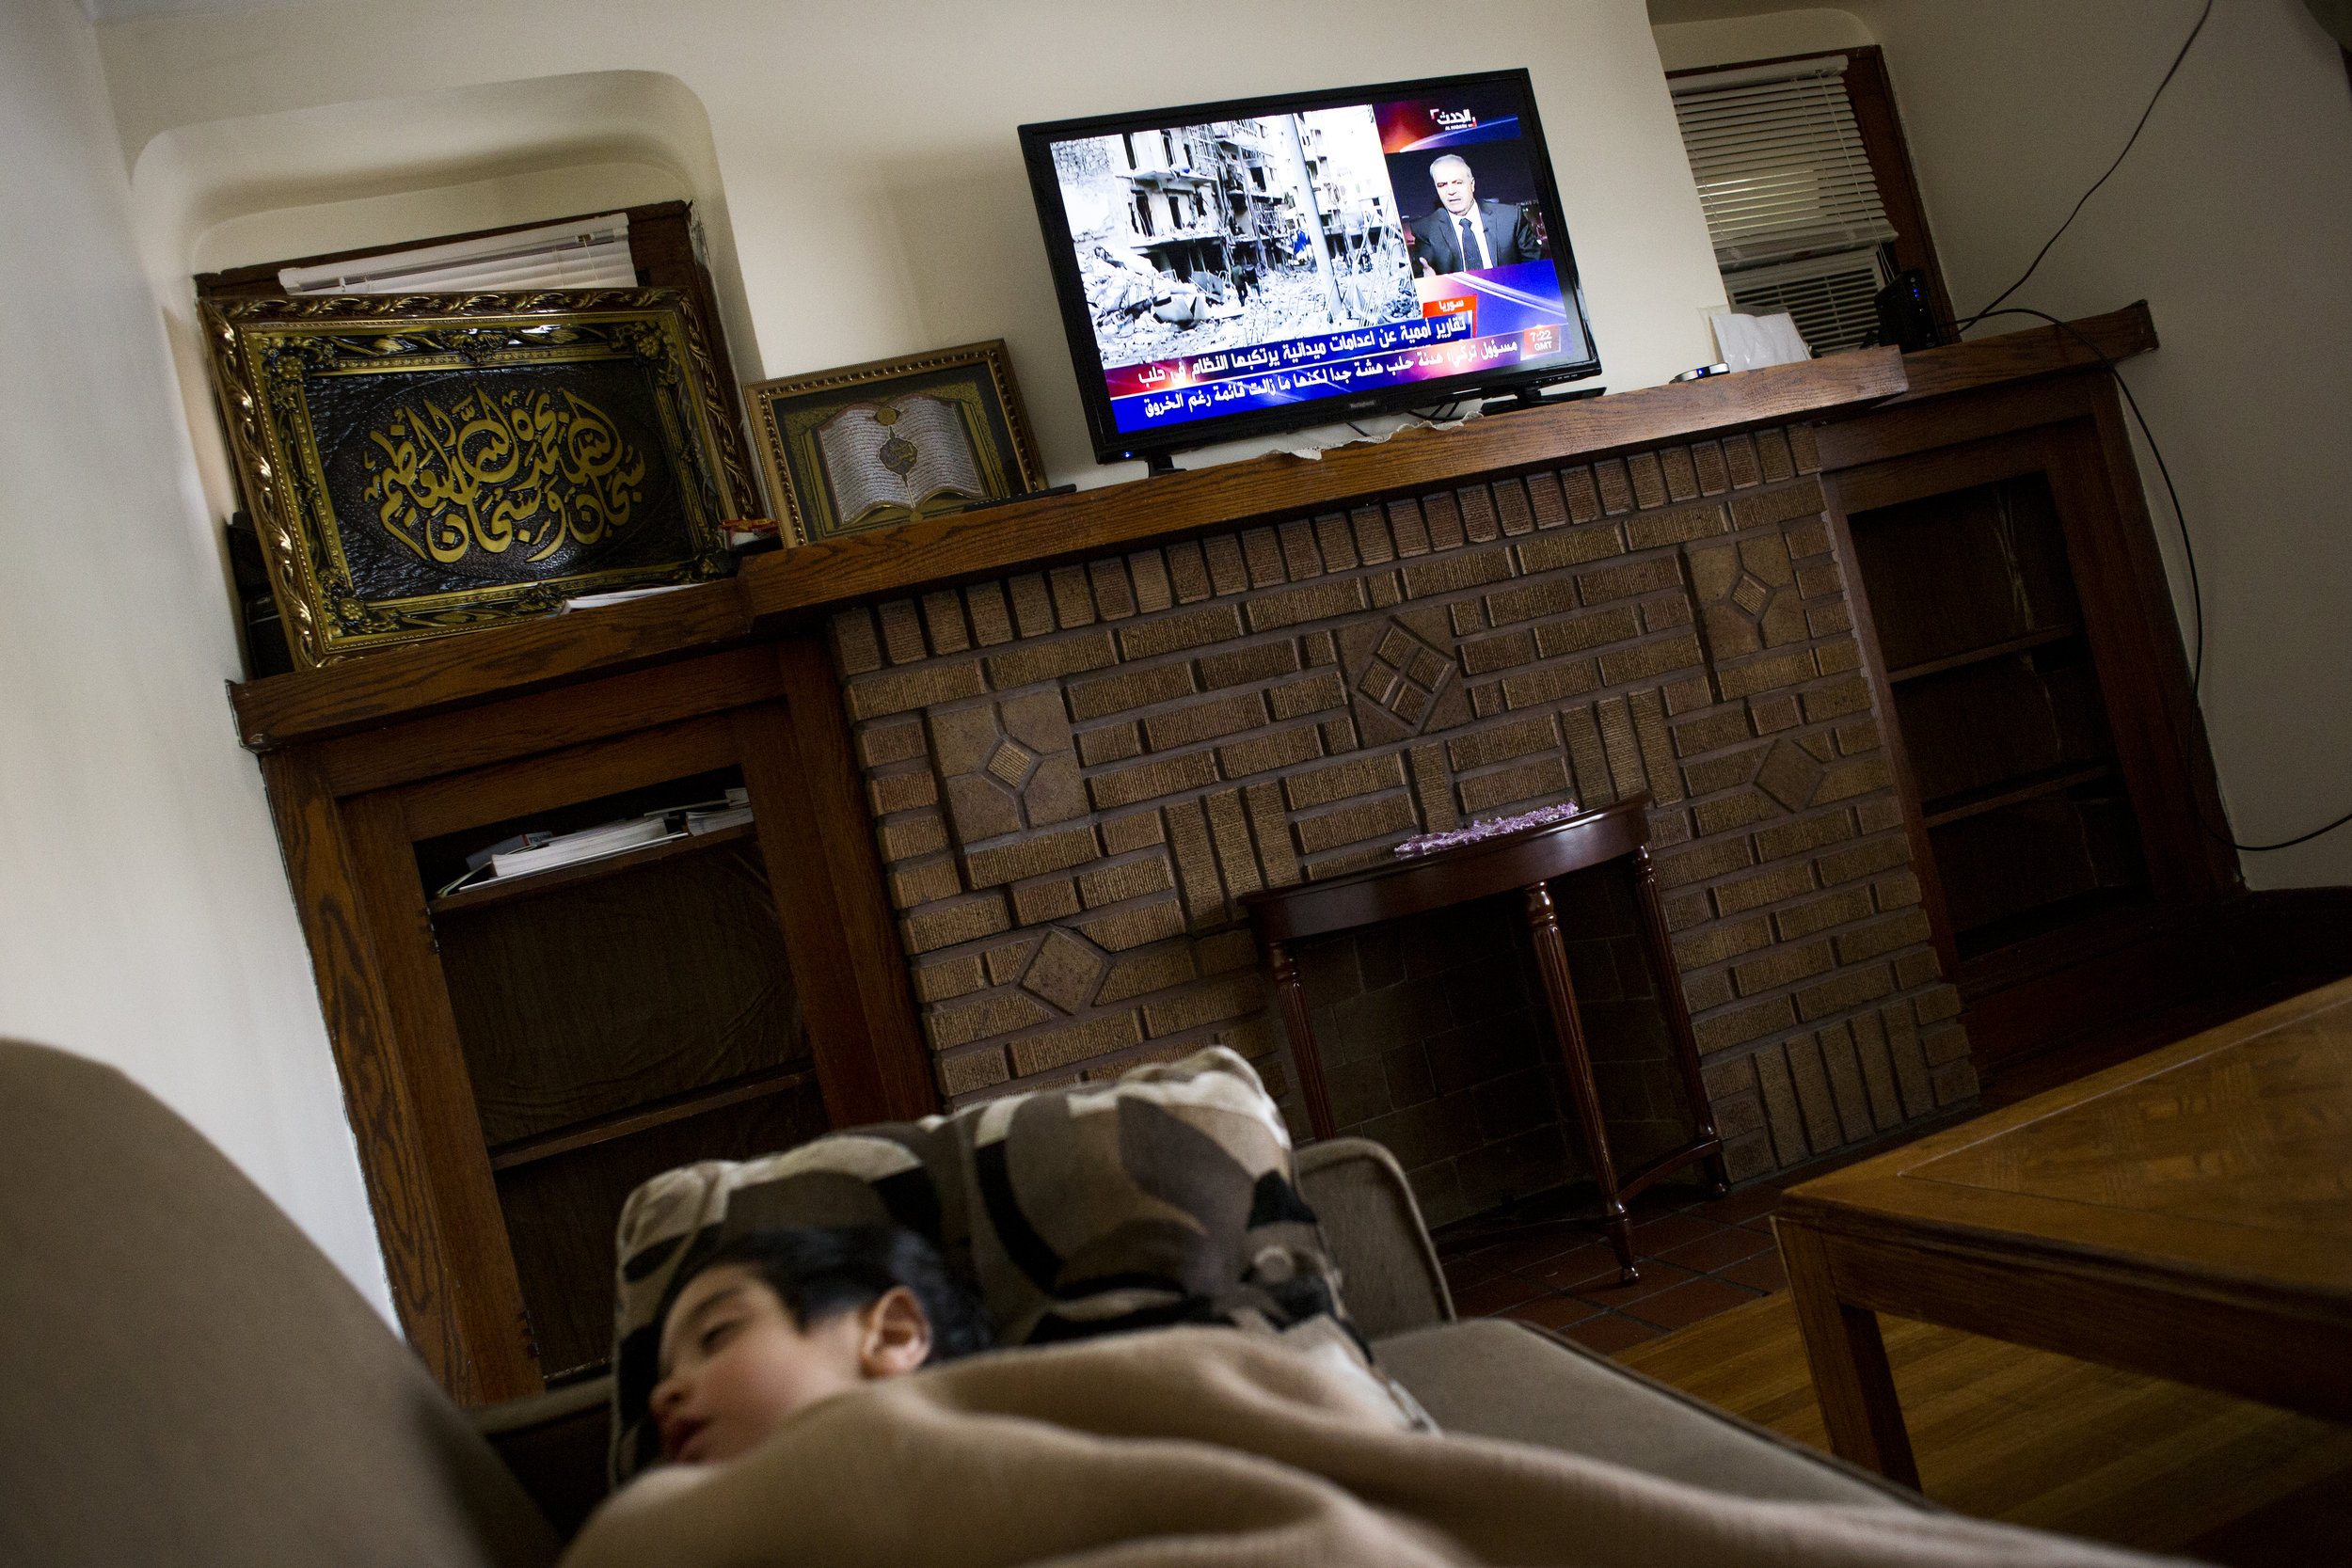 News on the conflict in Syria is broadcast on the television while Mohamad sleeps in his home.